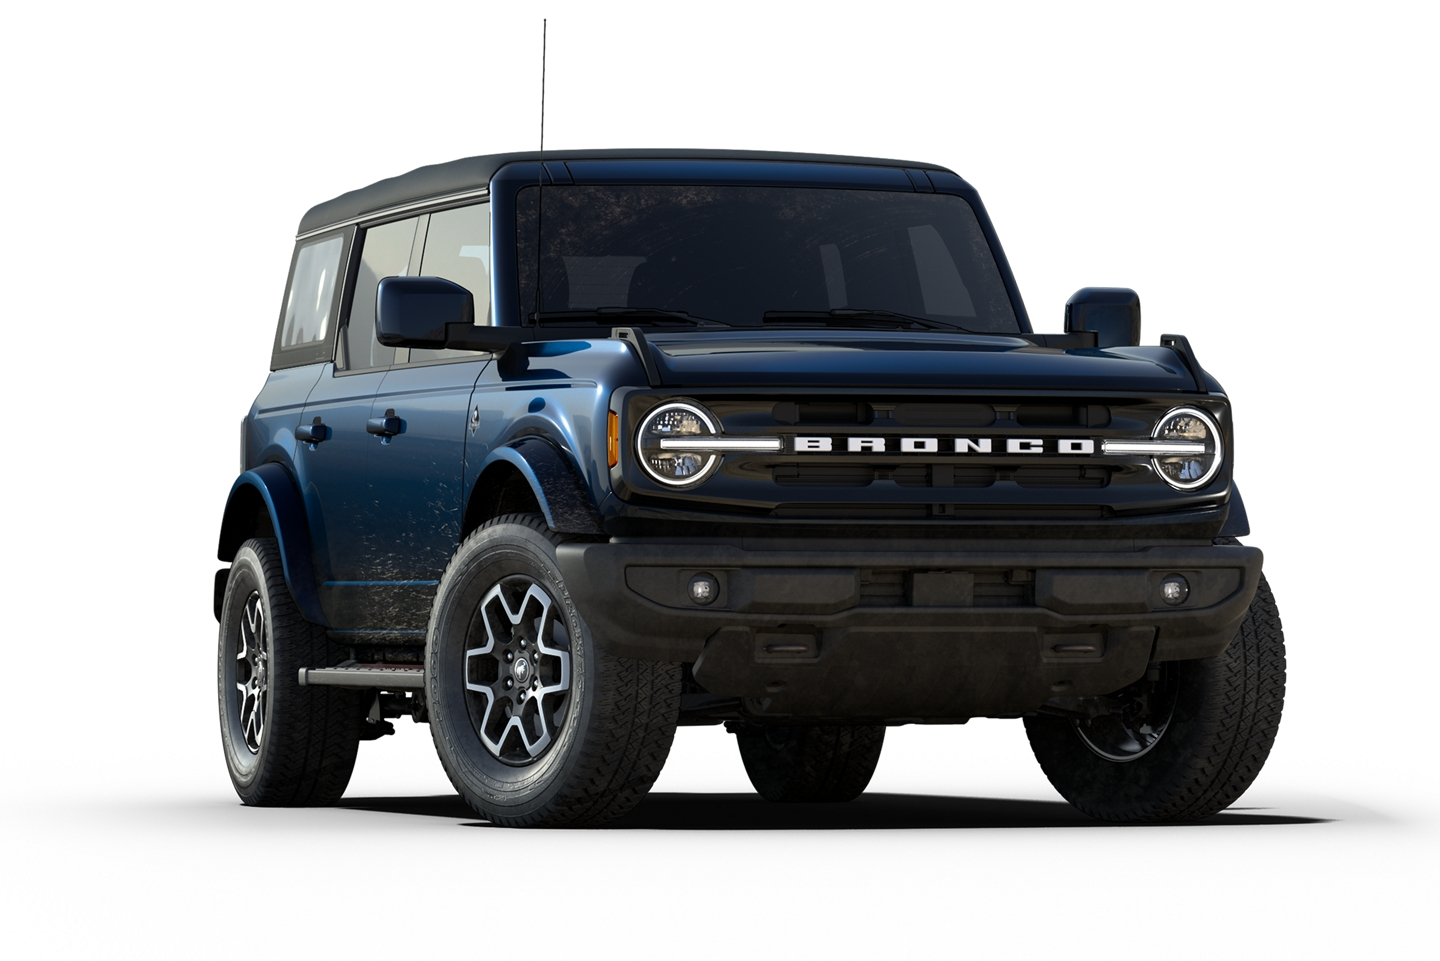 2021 Ford Bronco Outer Banks model